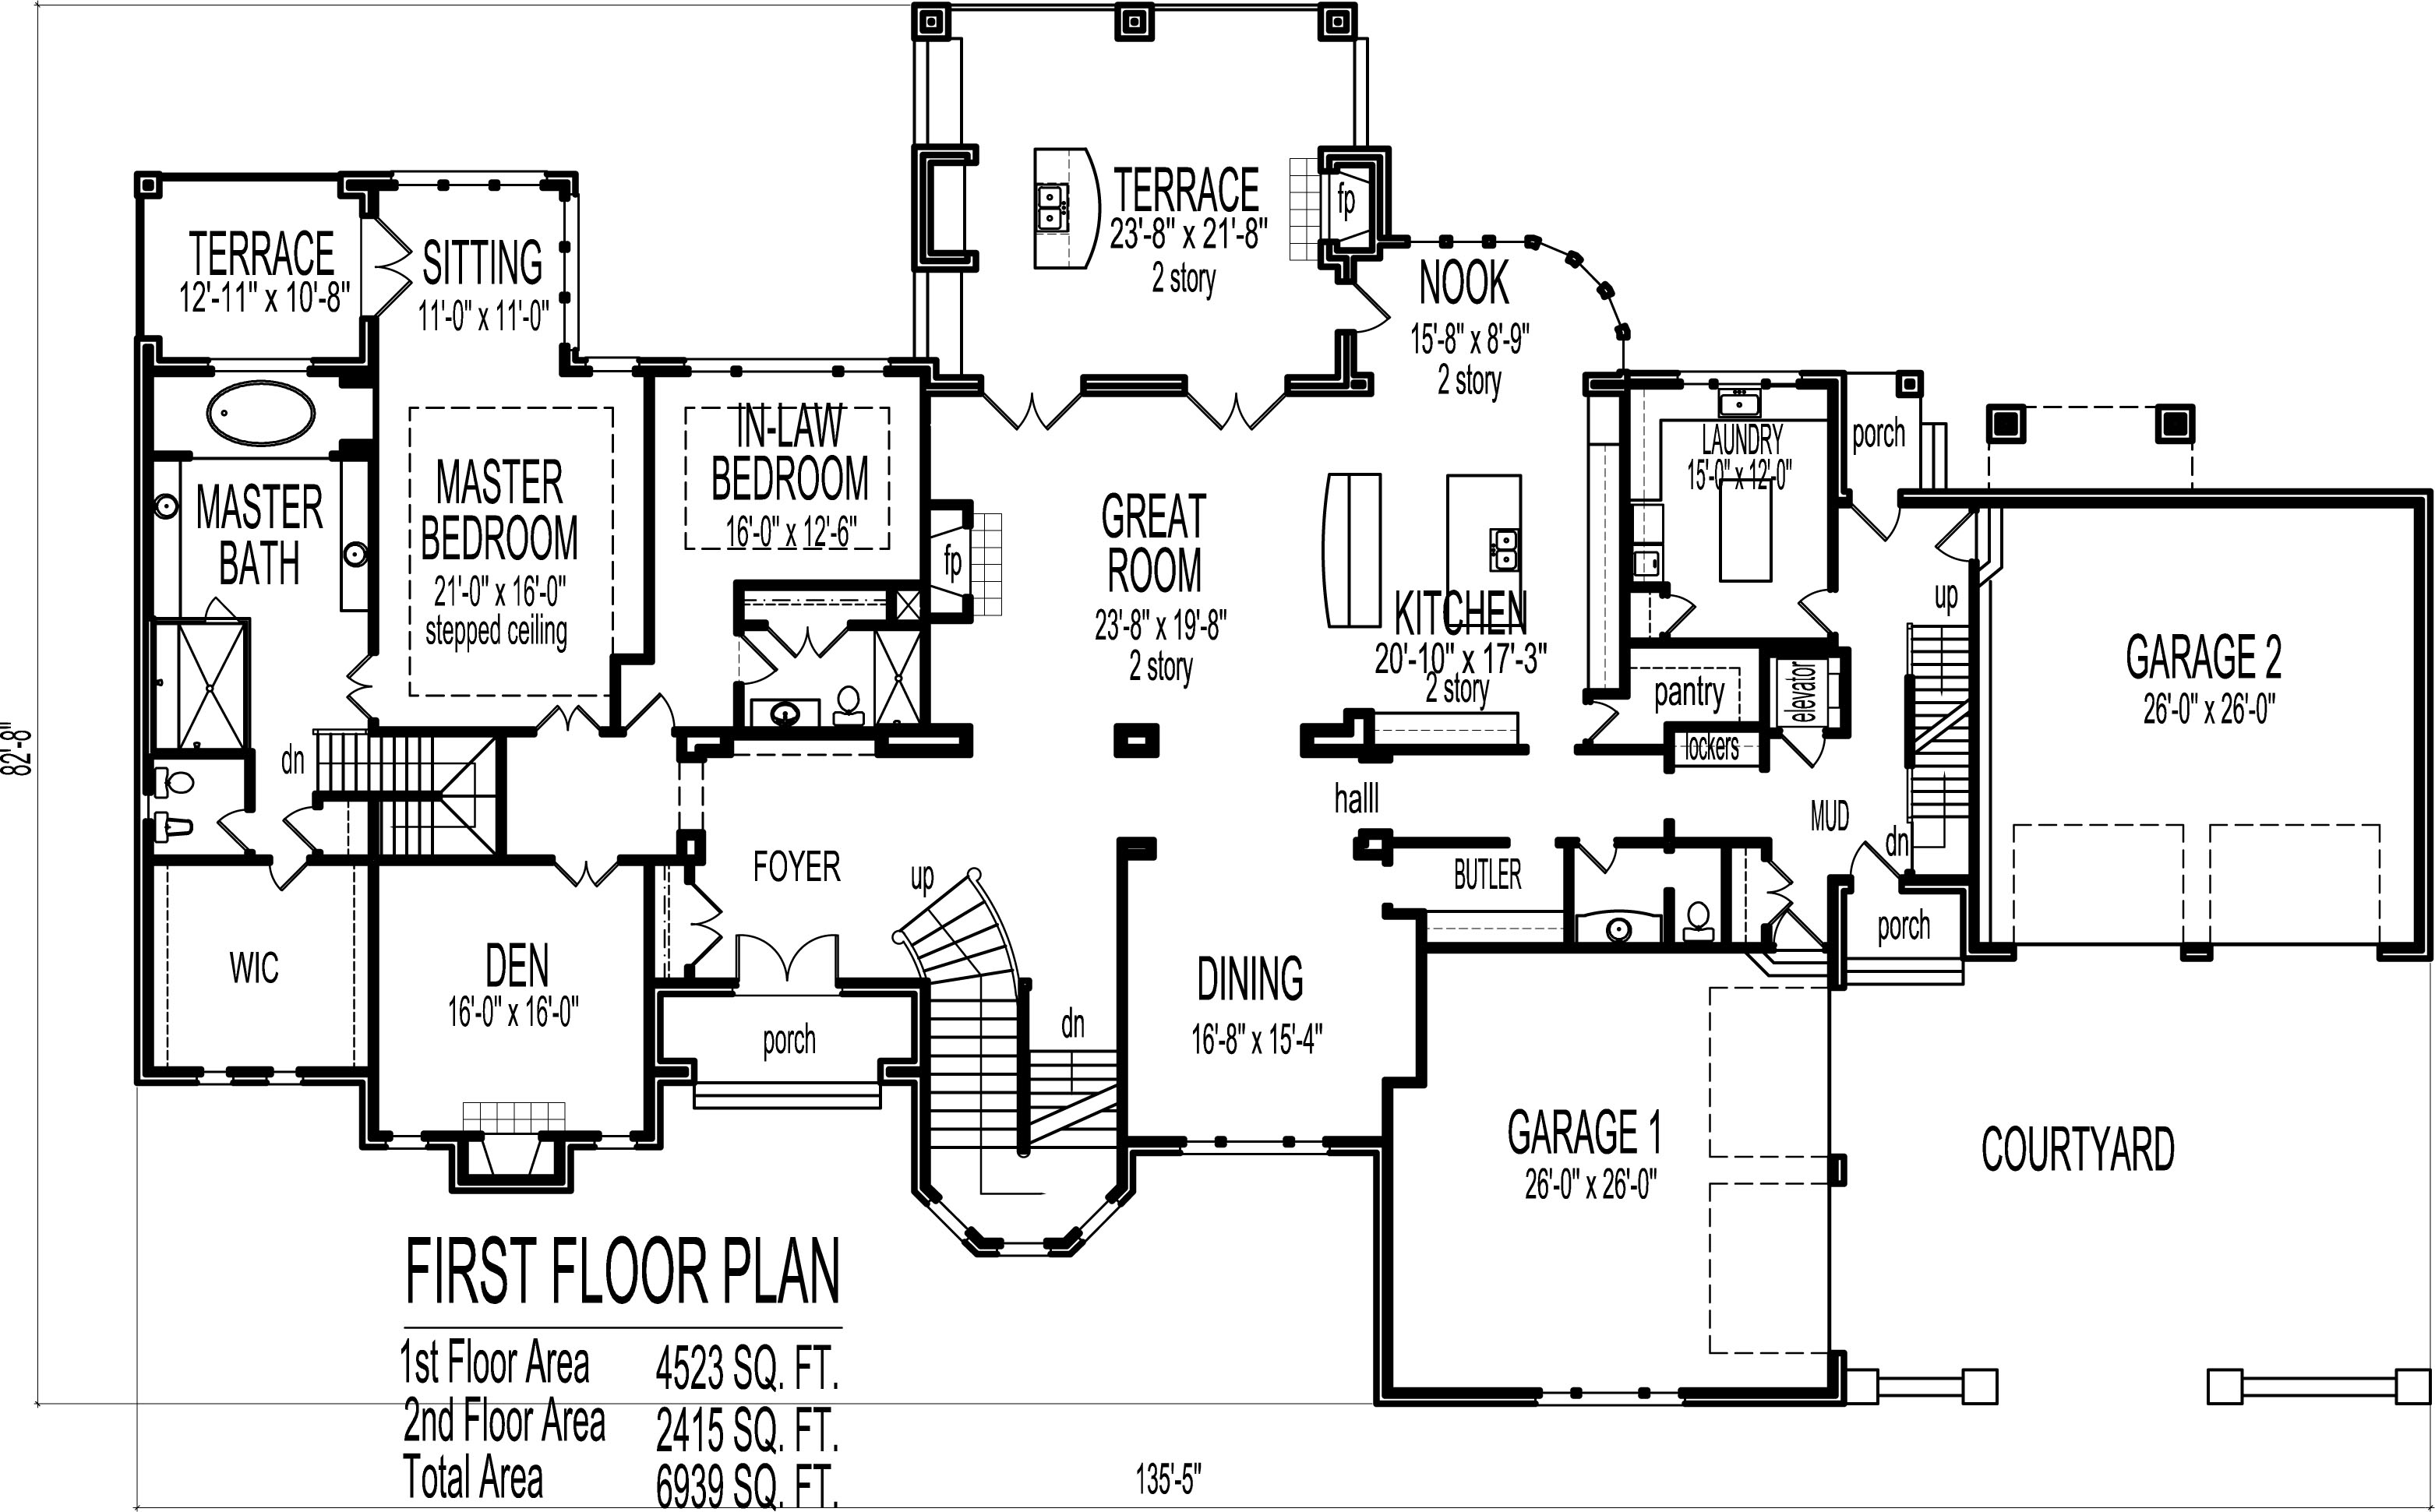 6 bedroom house plans blueprints on 2 bedroom triplex home plans